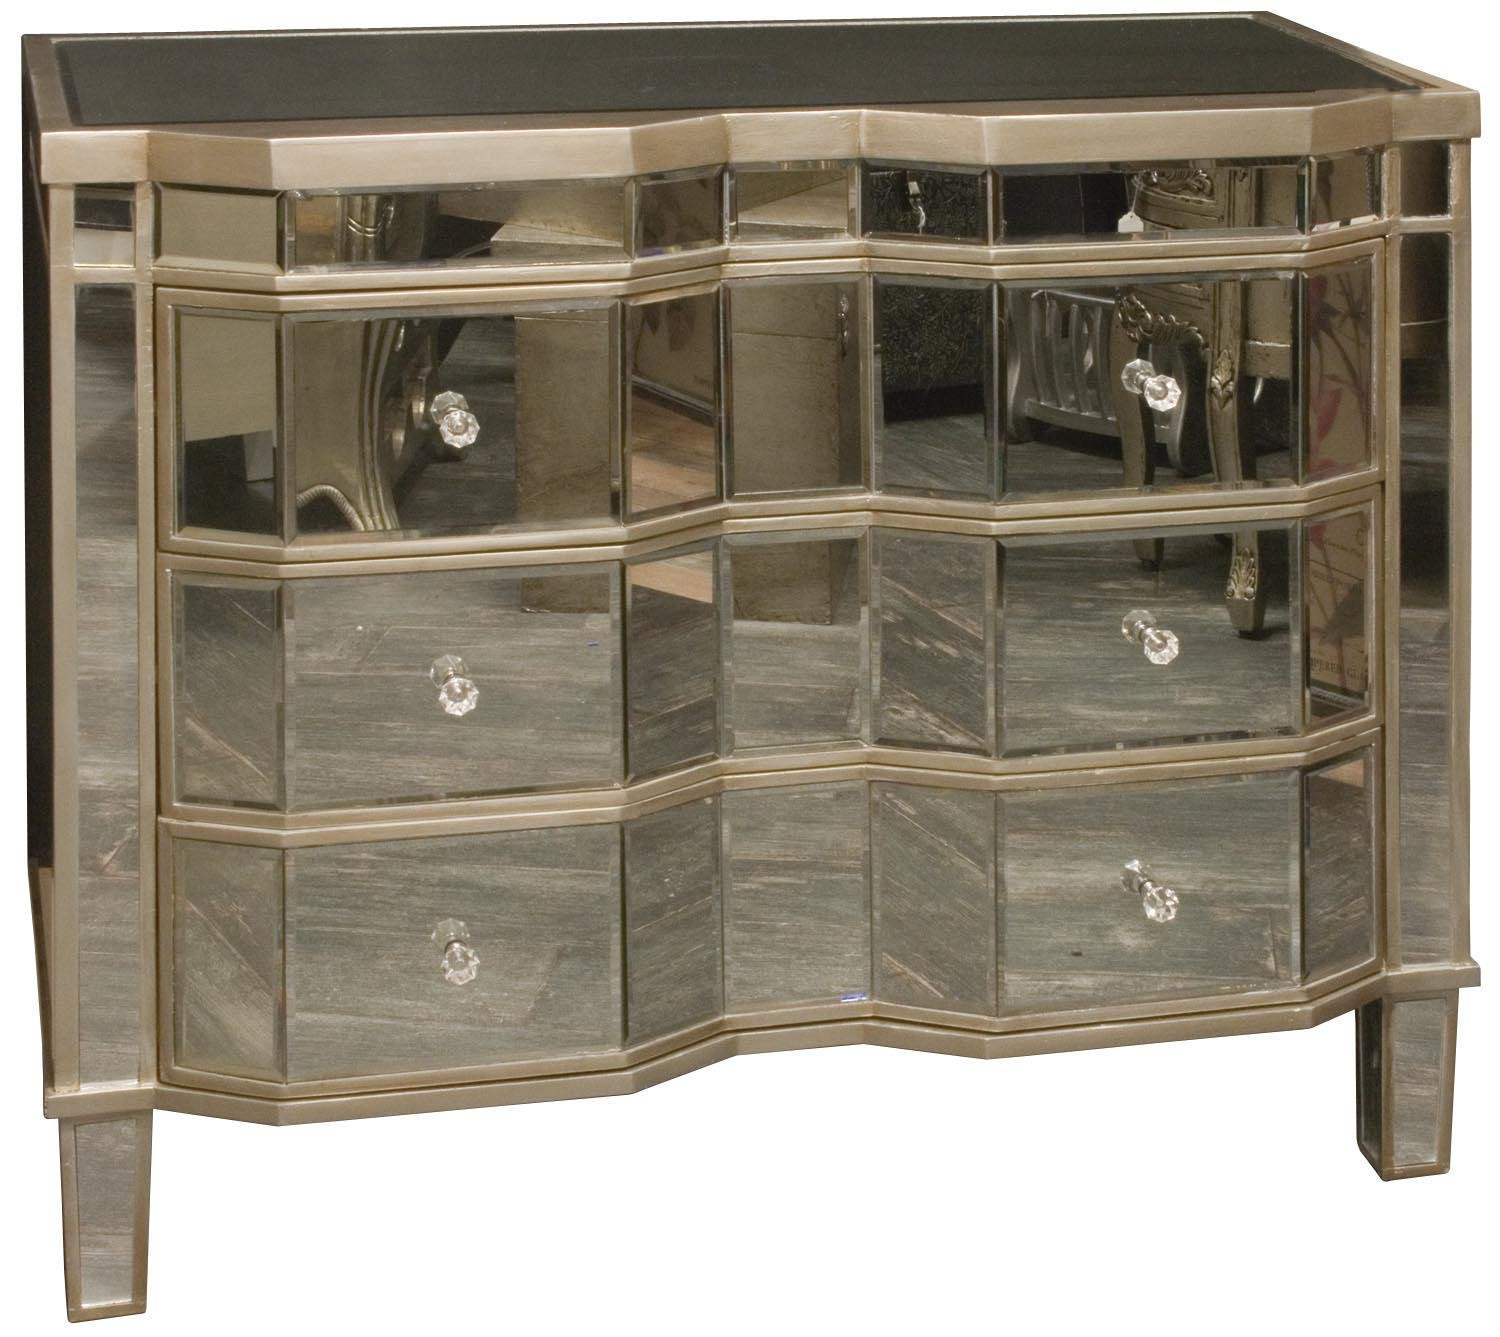 Opera silver mirrored 3 height chest